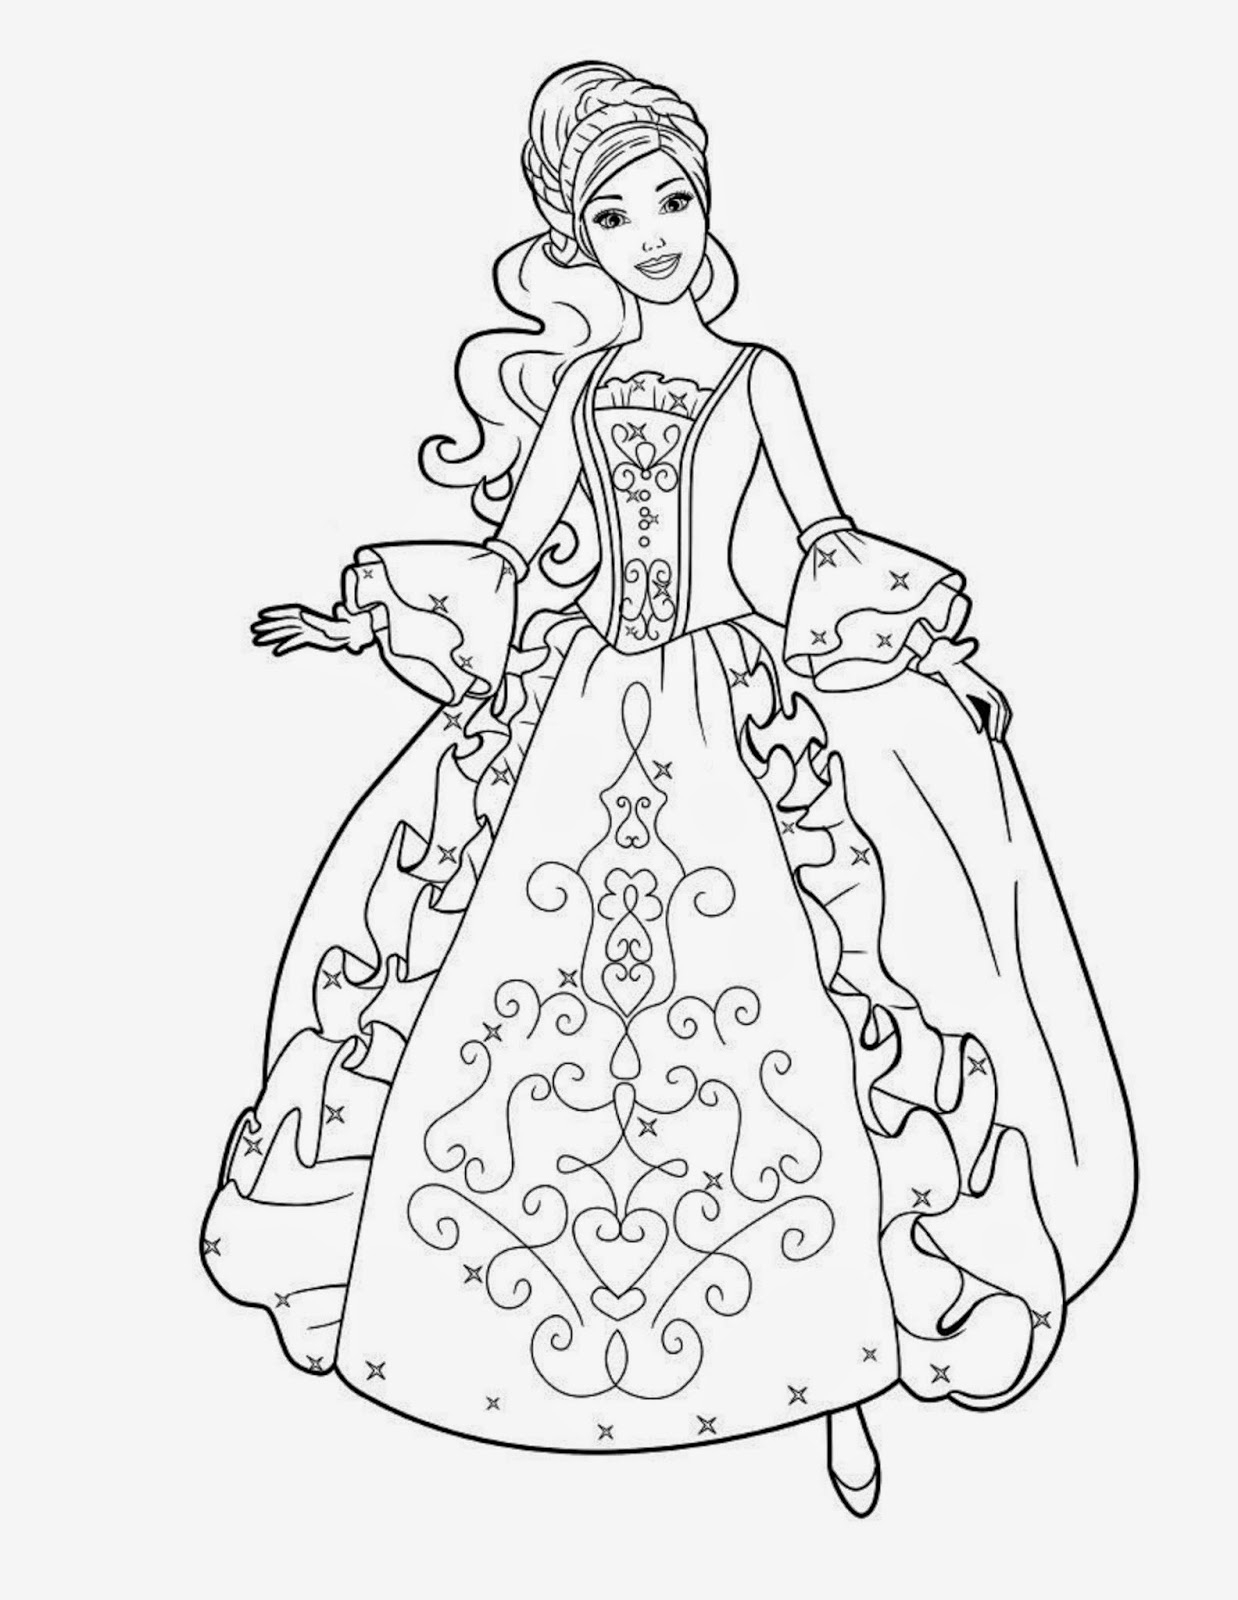 The Best Free Barbie Drawing Images Download From 1473 Free